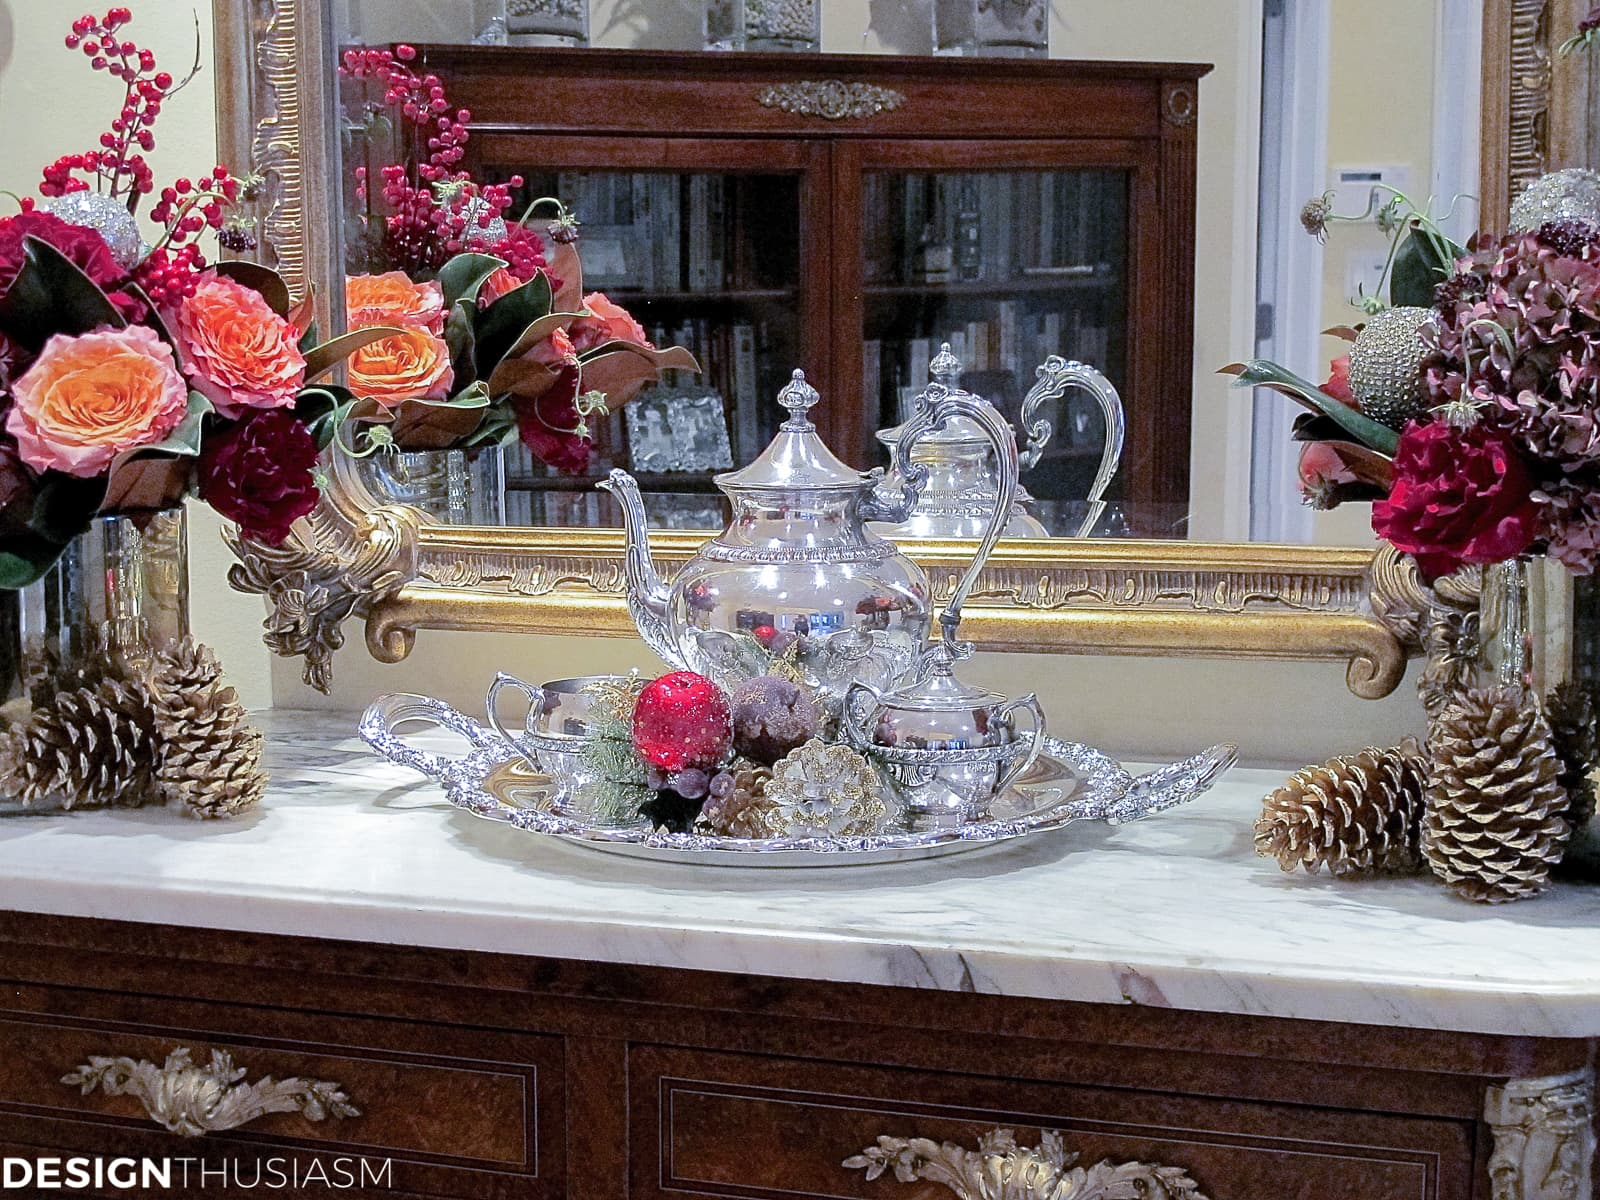 holiday decorating with Christmas flower arrangements